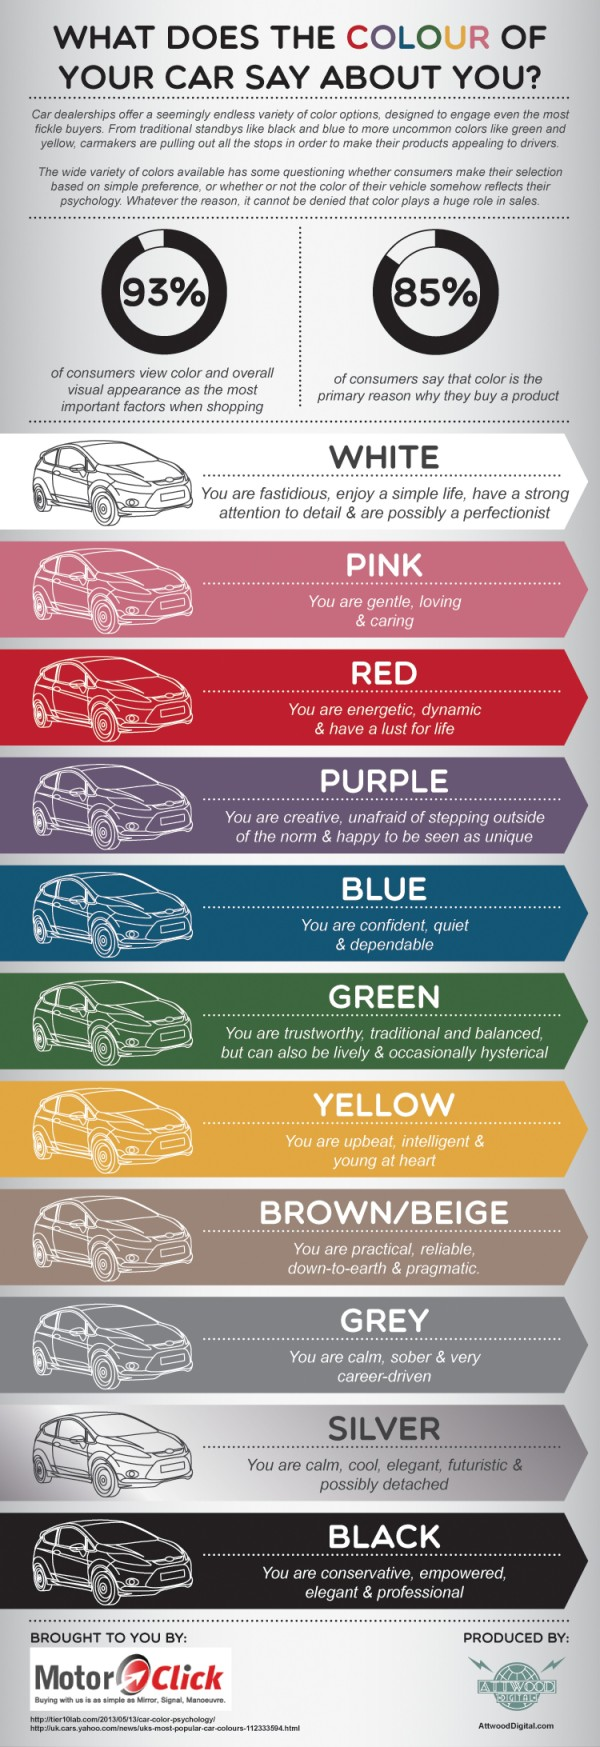 What Does the Colour of Your Car Say About You? infographic